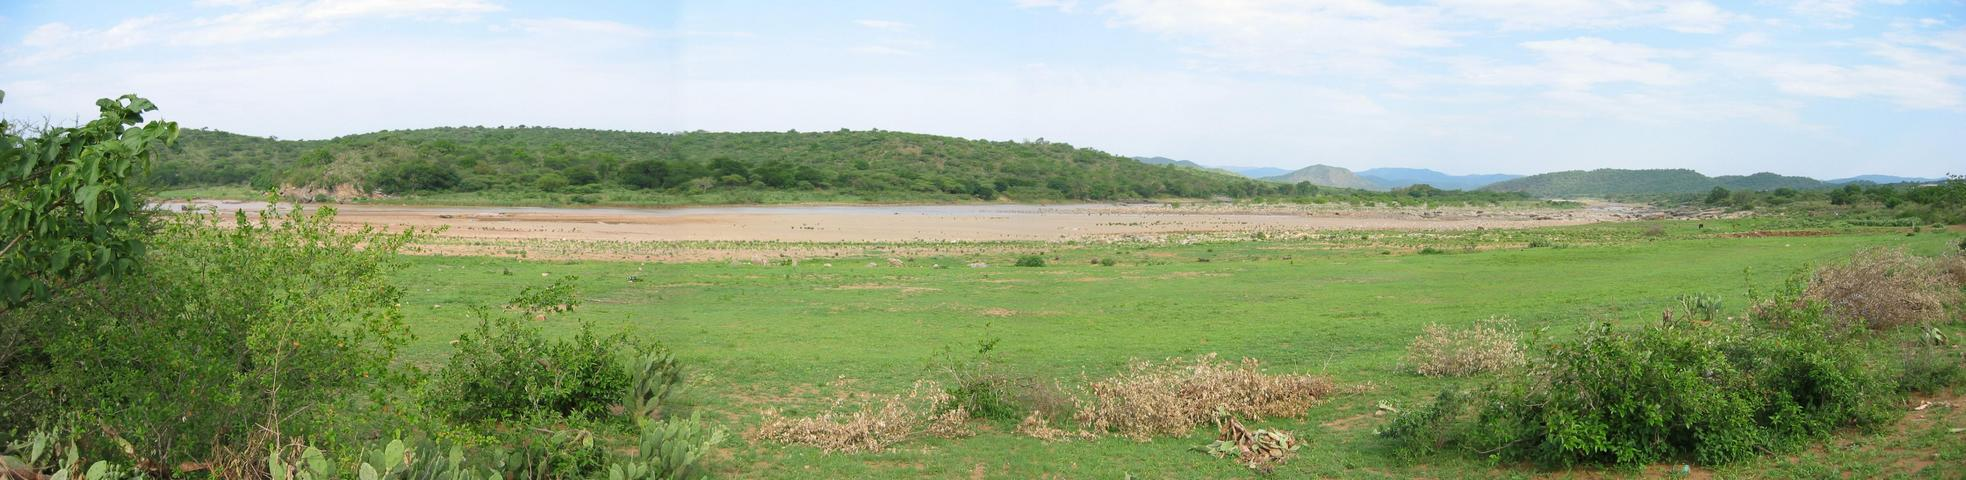 Panorama of Tugela River